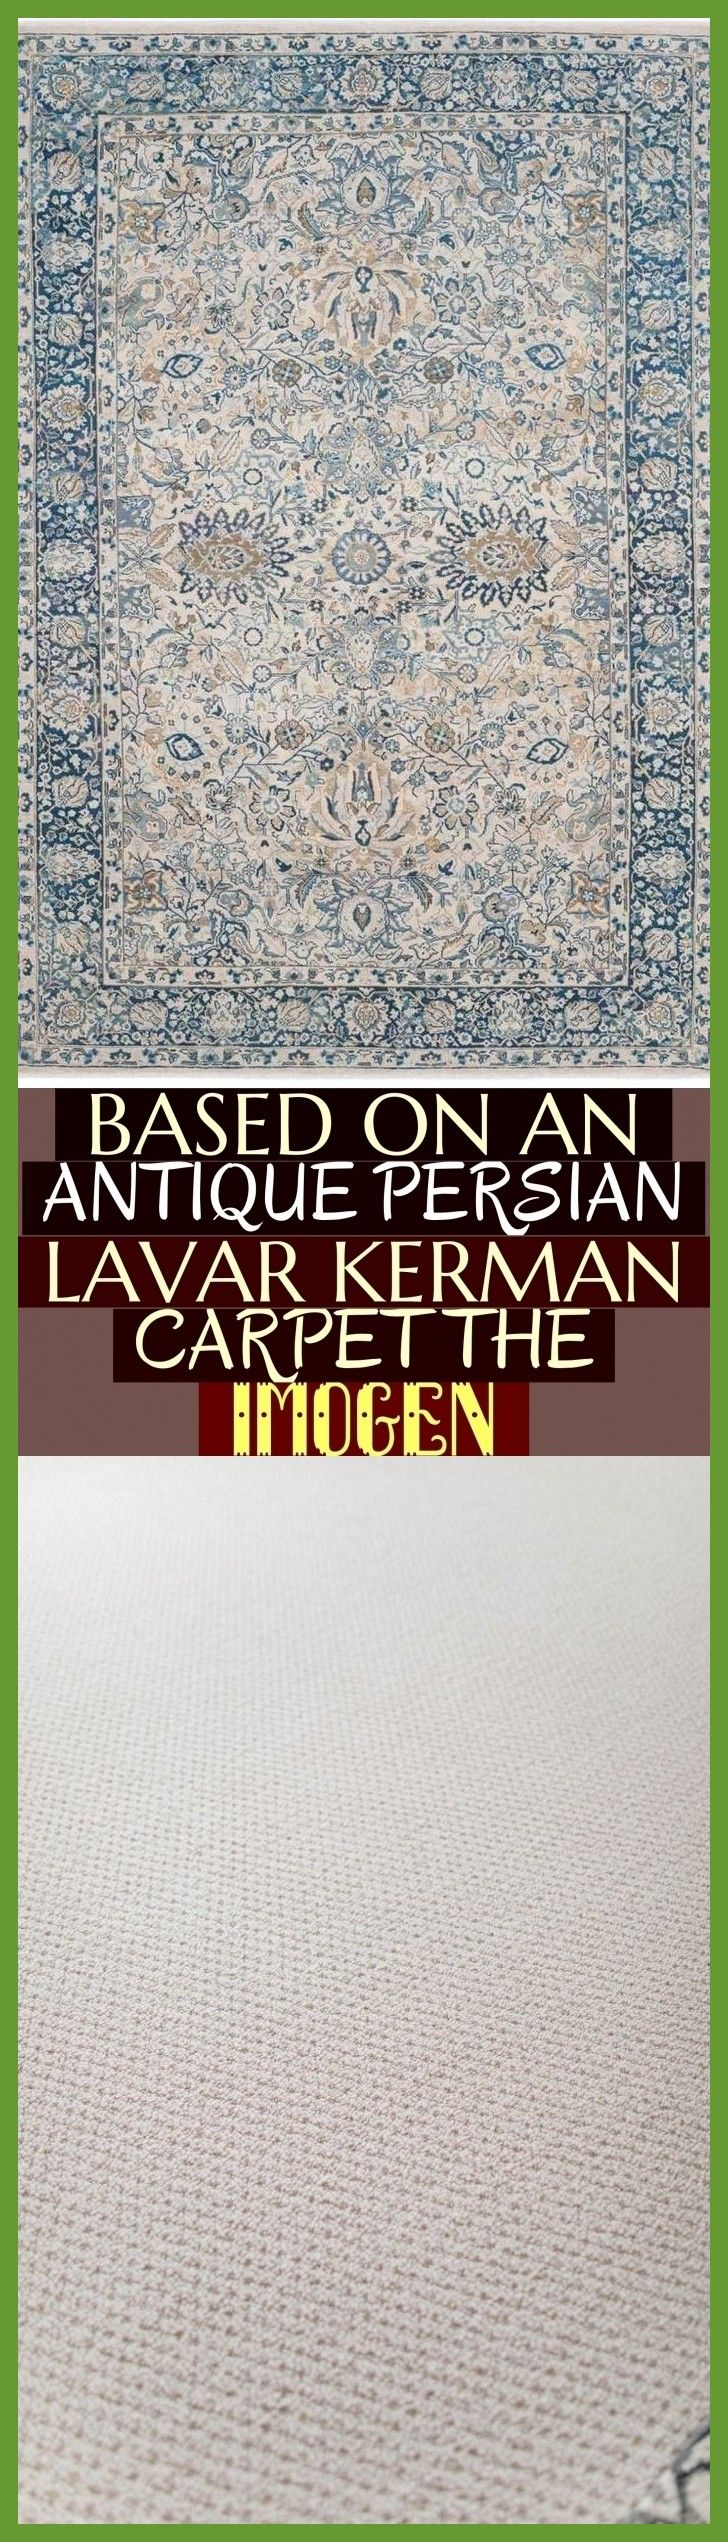 Based On An Antique Persian Lavar Kerman Carpet The Imogen Basierend Auf Einem Antiken Persischen Lavar Kerman Teppich The Imogen Ca Kerman Antiques Carpet